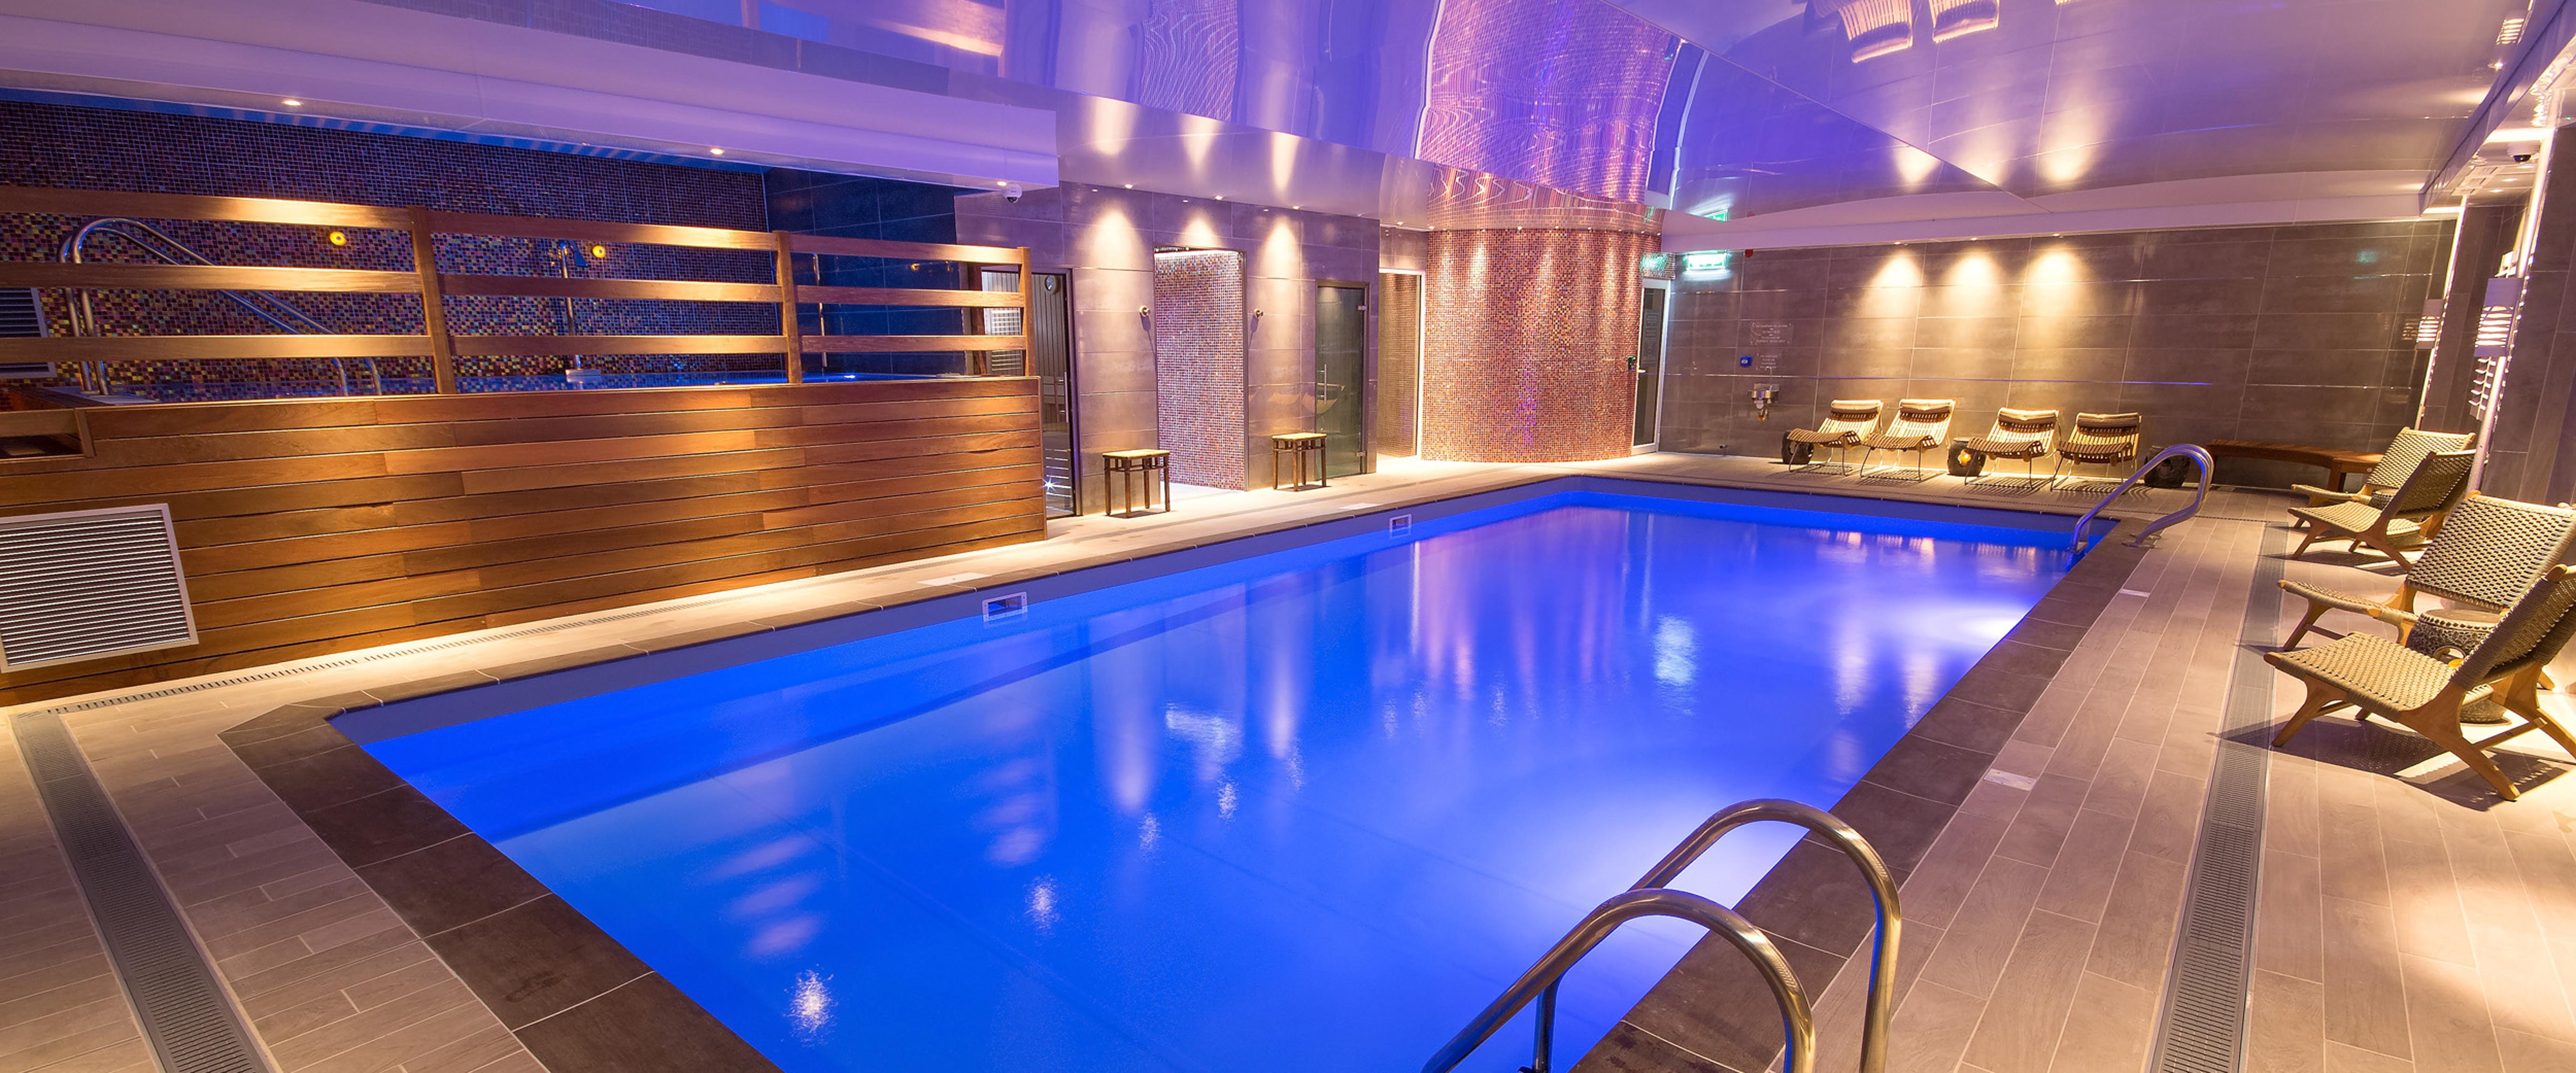 The spa at Ilsington Country House Hotel